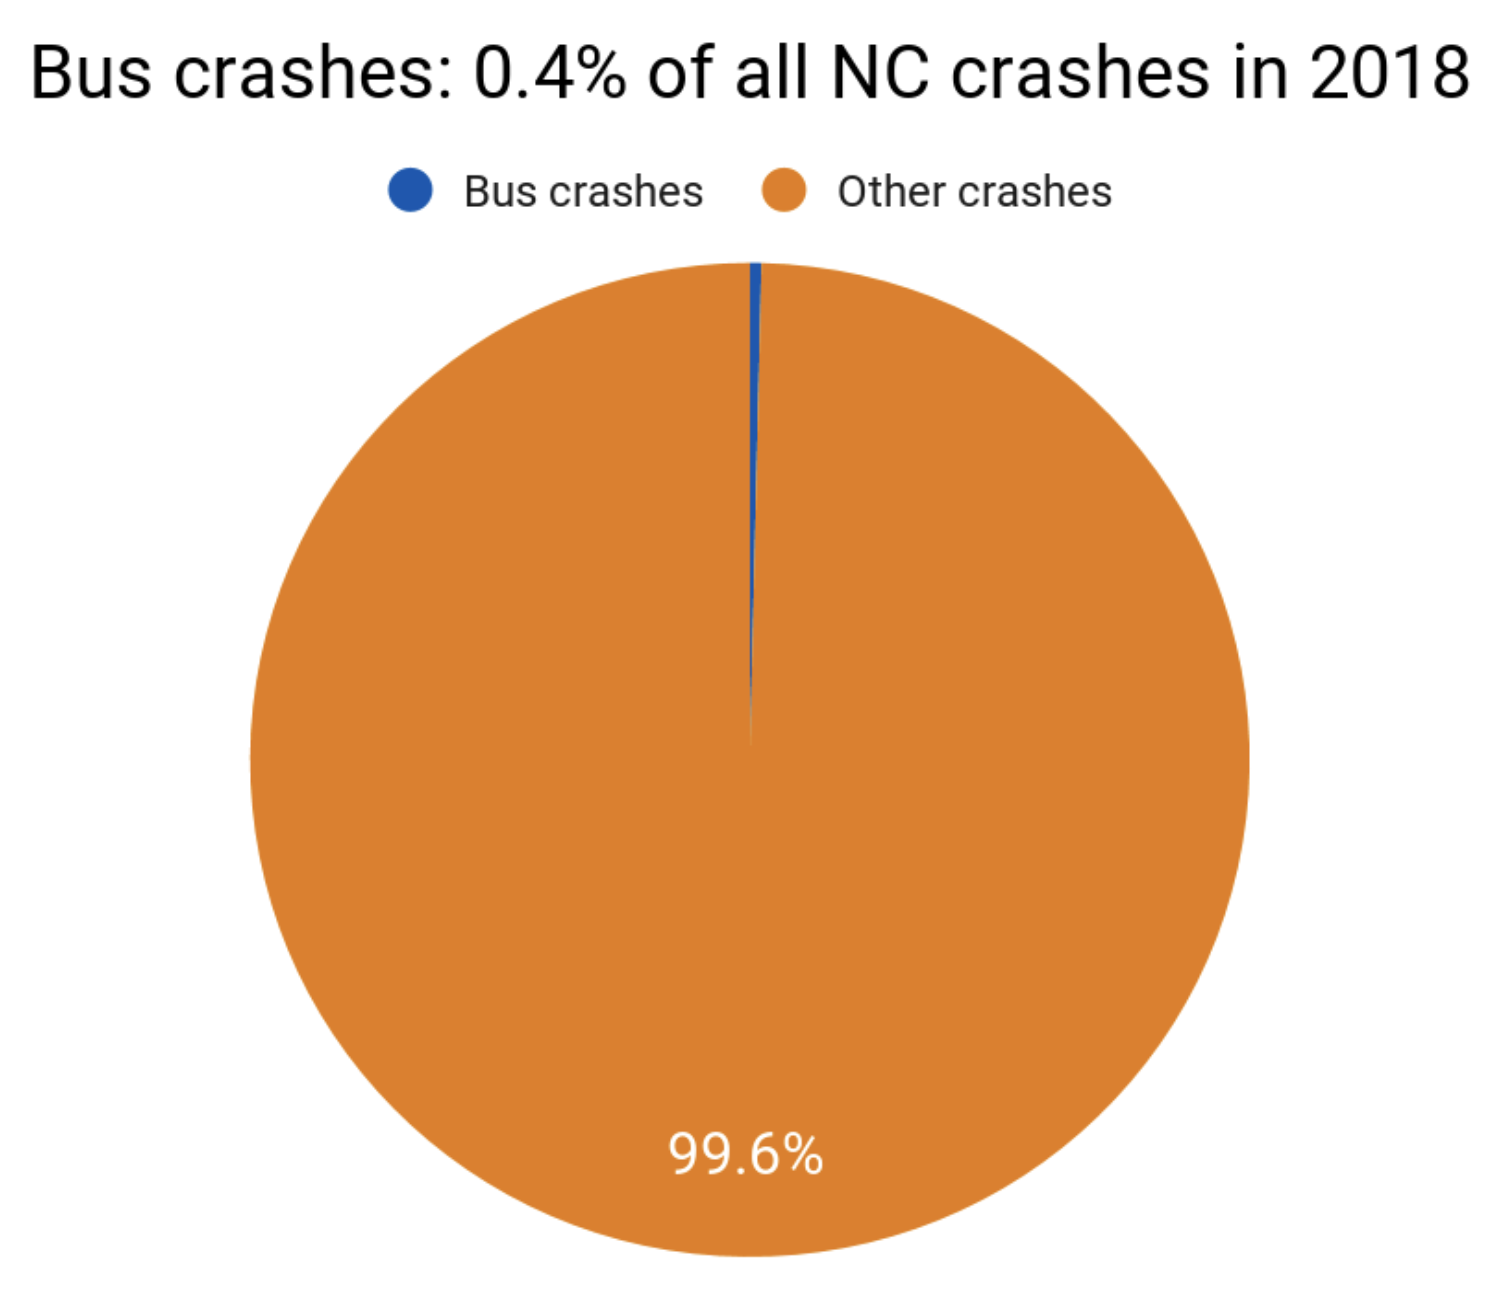 Estadísticas de accidentes de autobús en Carolina del Norte